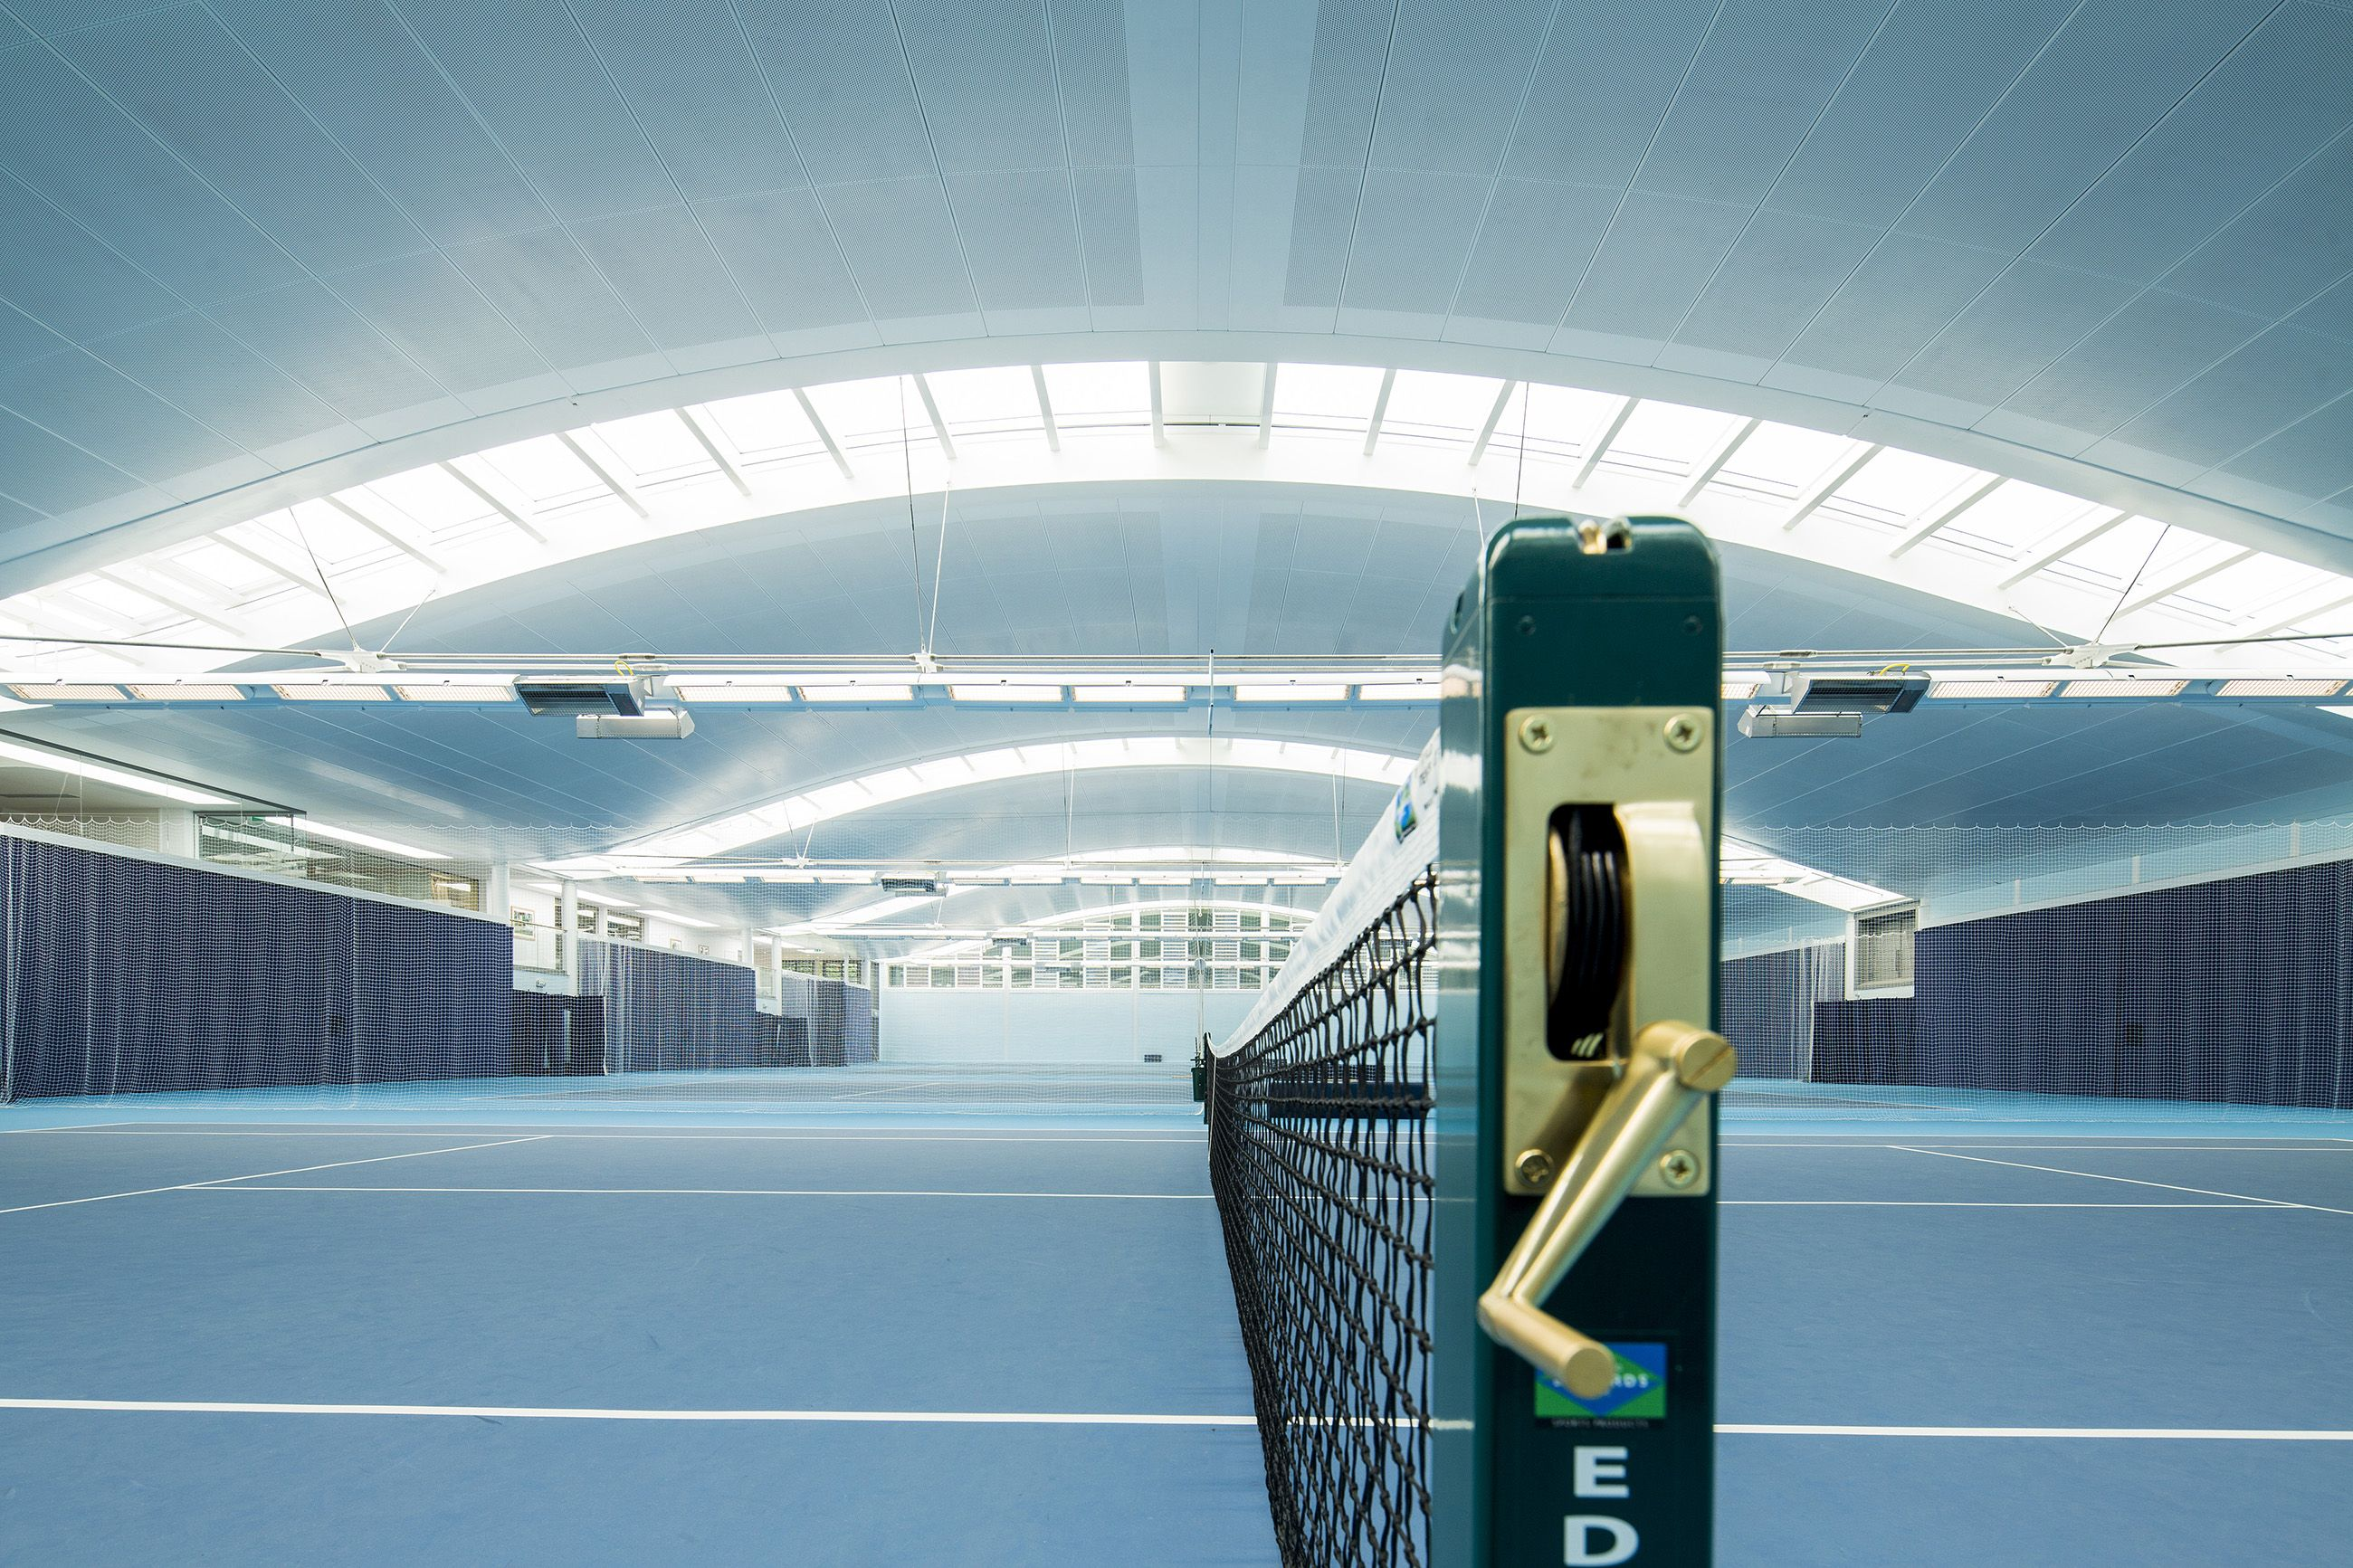 The Hurlingham Racquet Centre Is A Sports Complex Including Four Indoor Tennis Courts And Four Squash Courts Image By Indoor Tennis Hurlingham Sports Complex